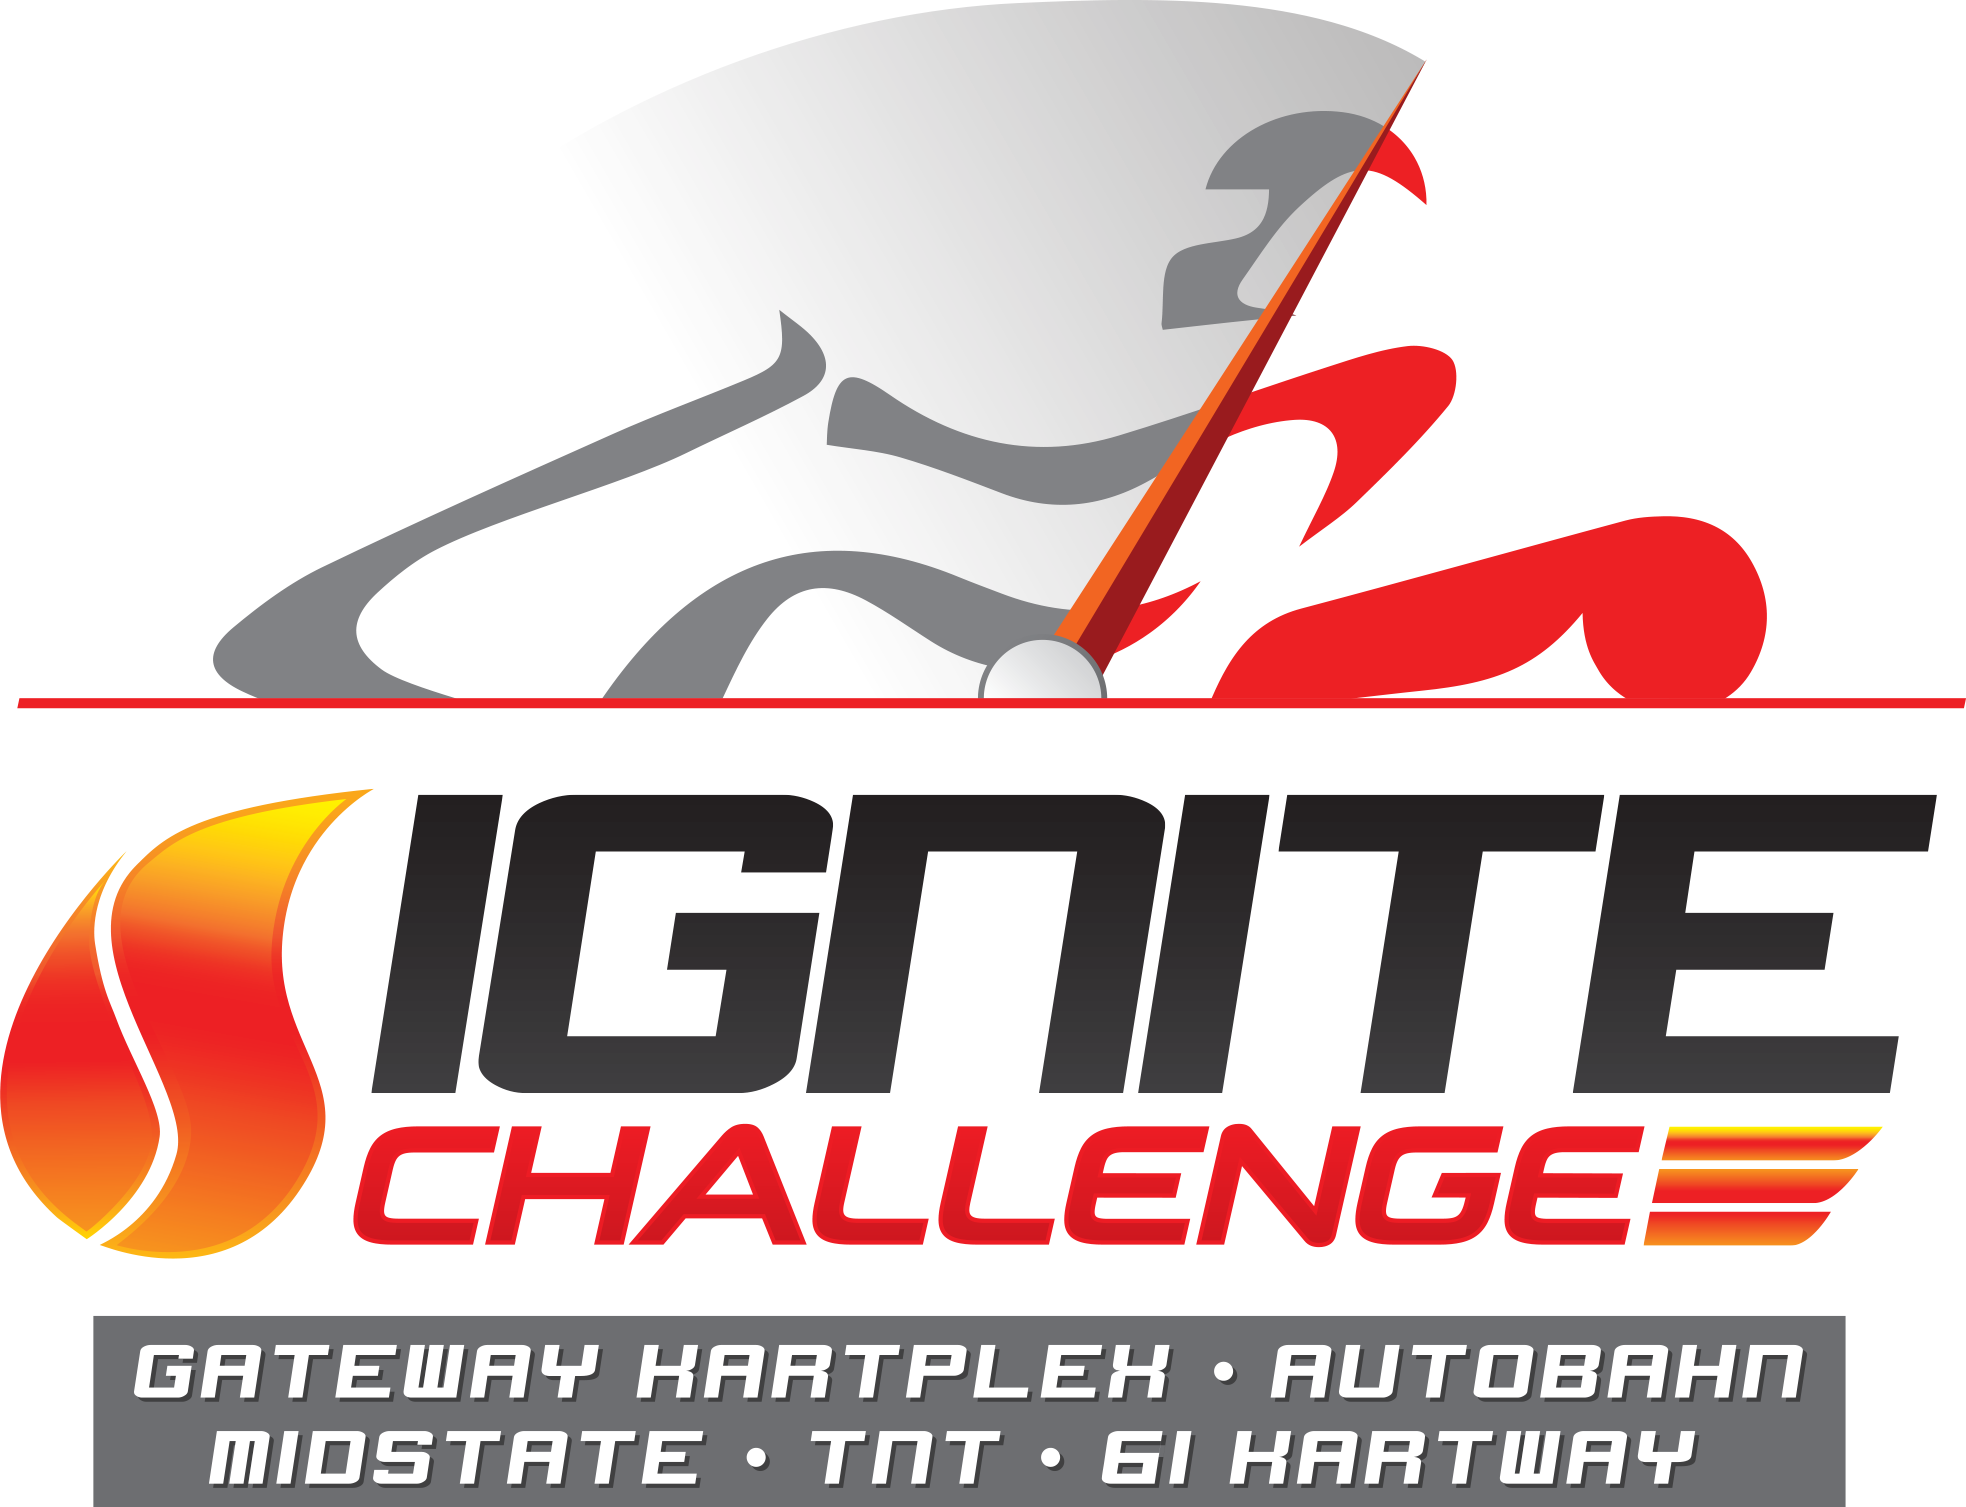 2018 Ignite Challenge Series Registration (Existing Kart Owners)